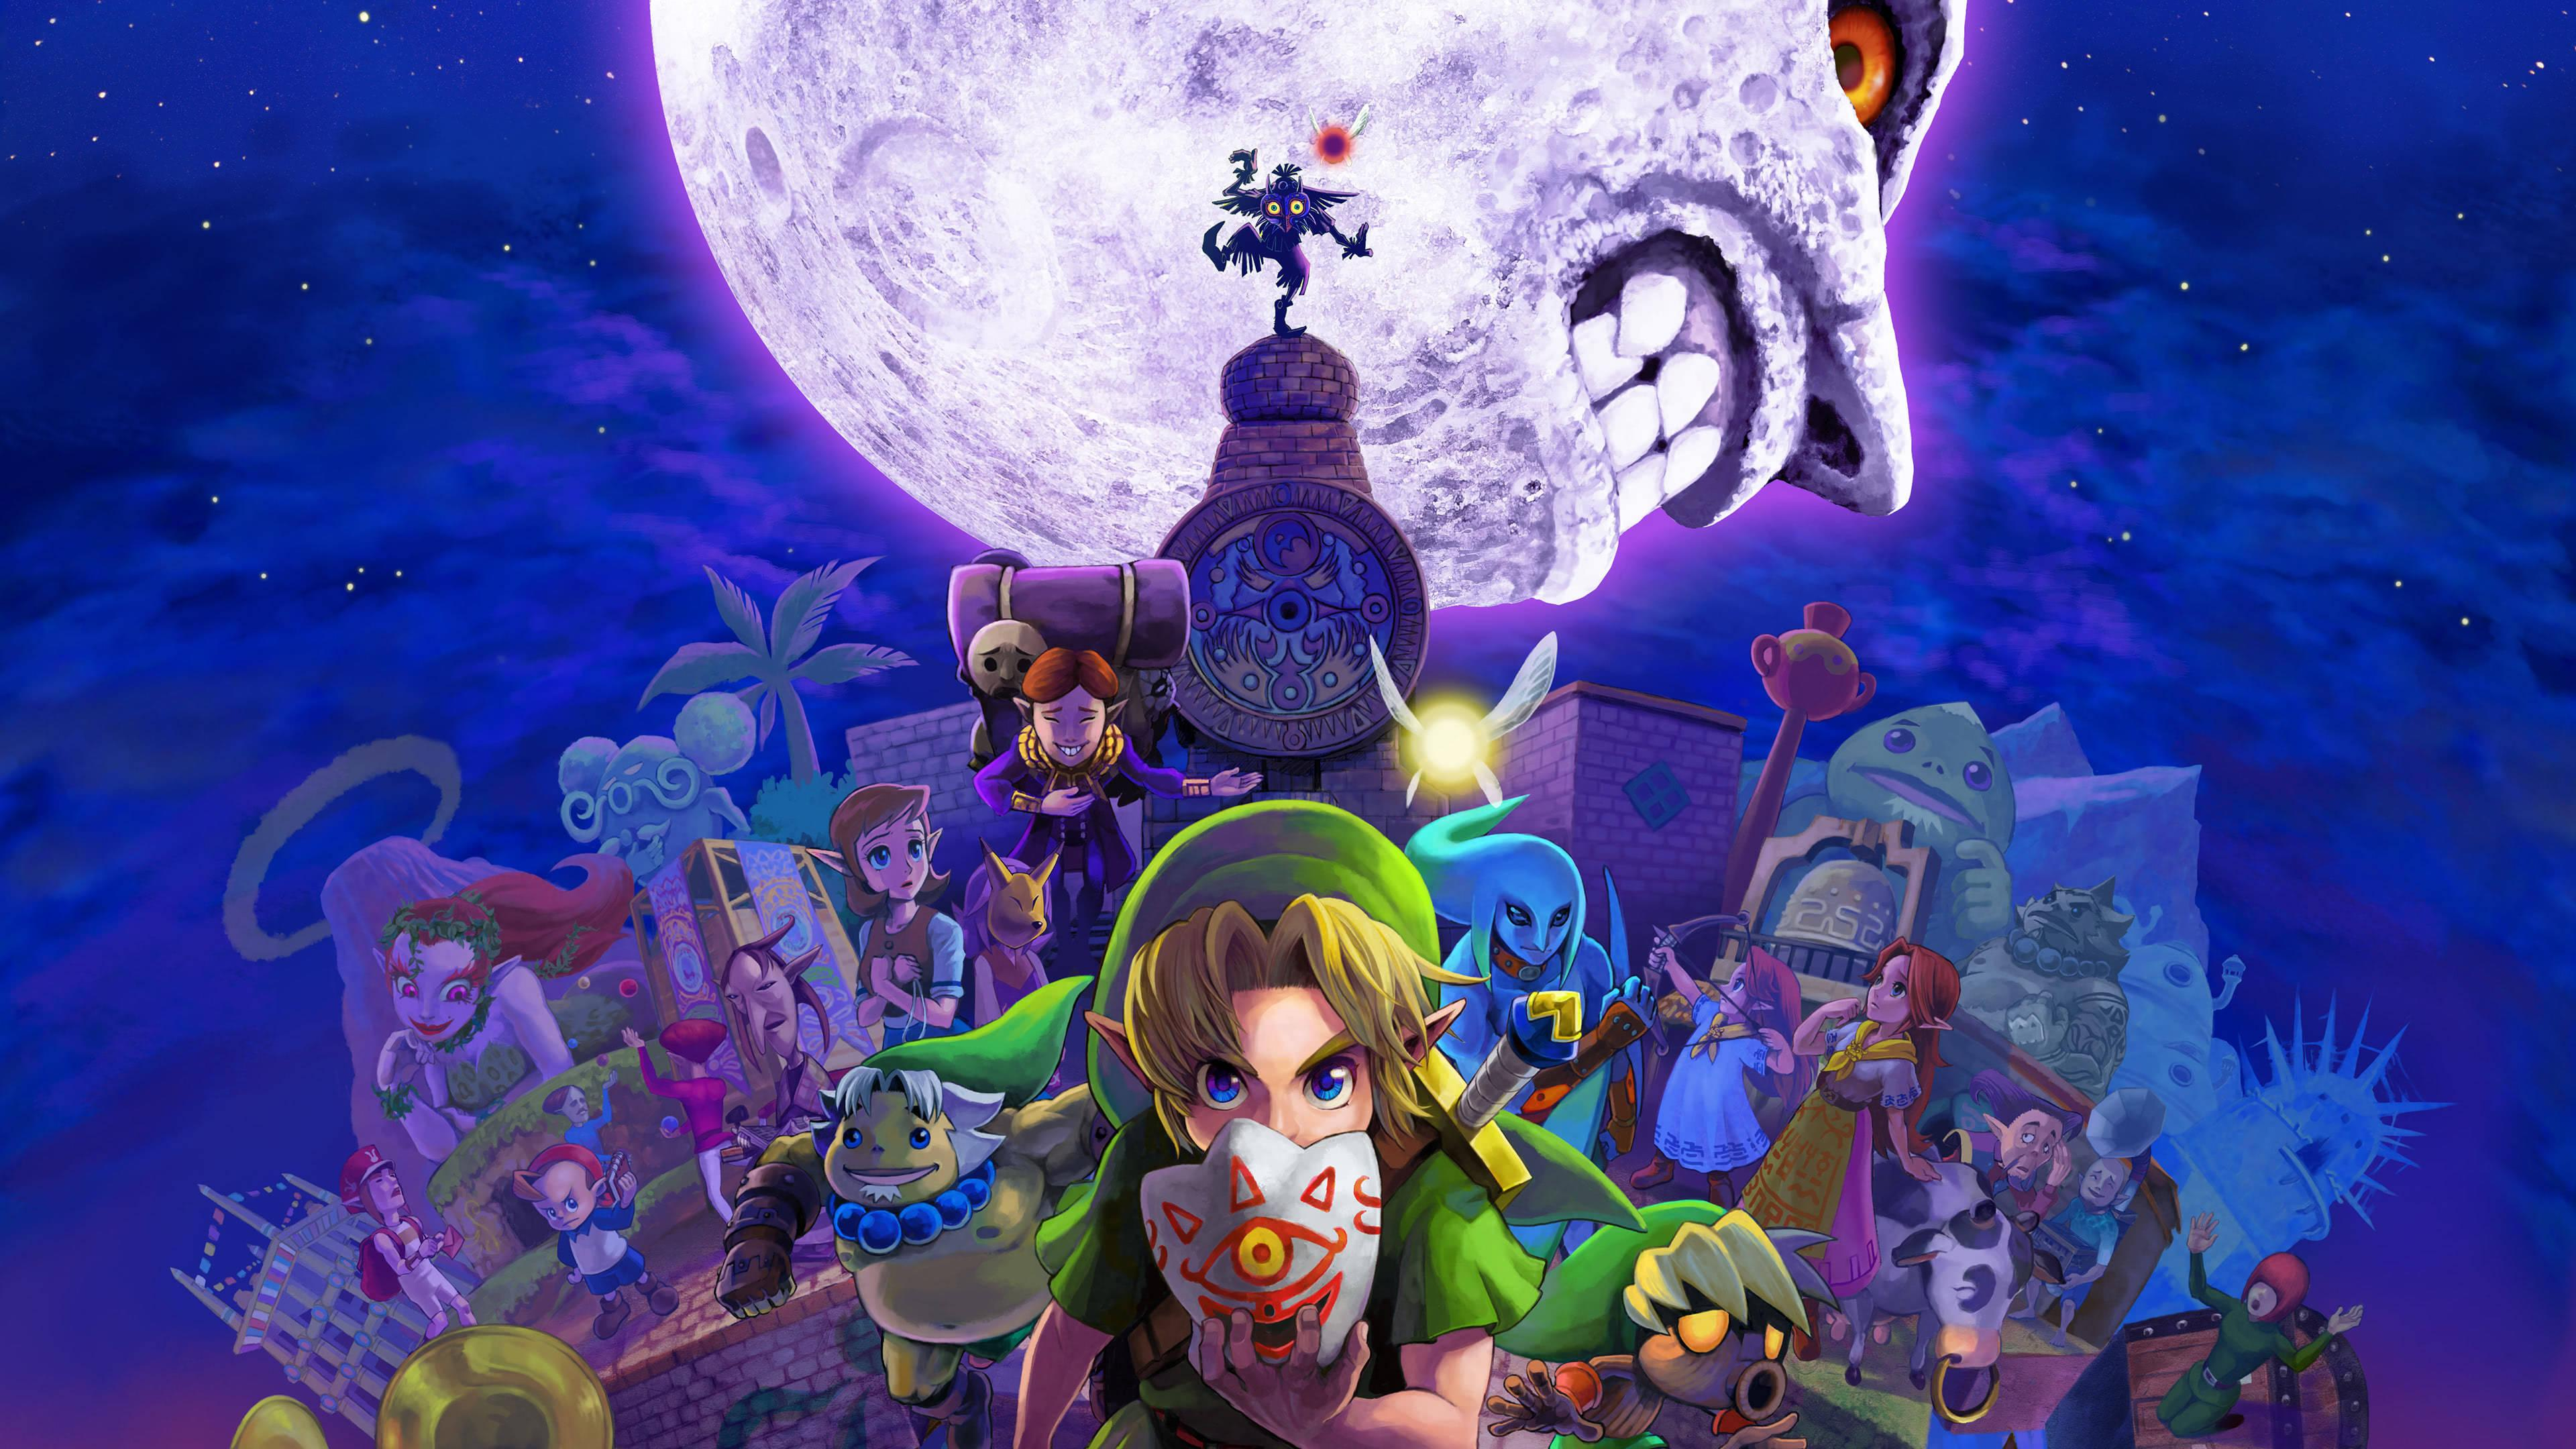 Legend of Zelda Majoras Mask UHD 4K Wallpapers